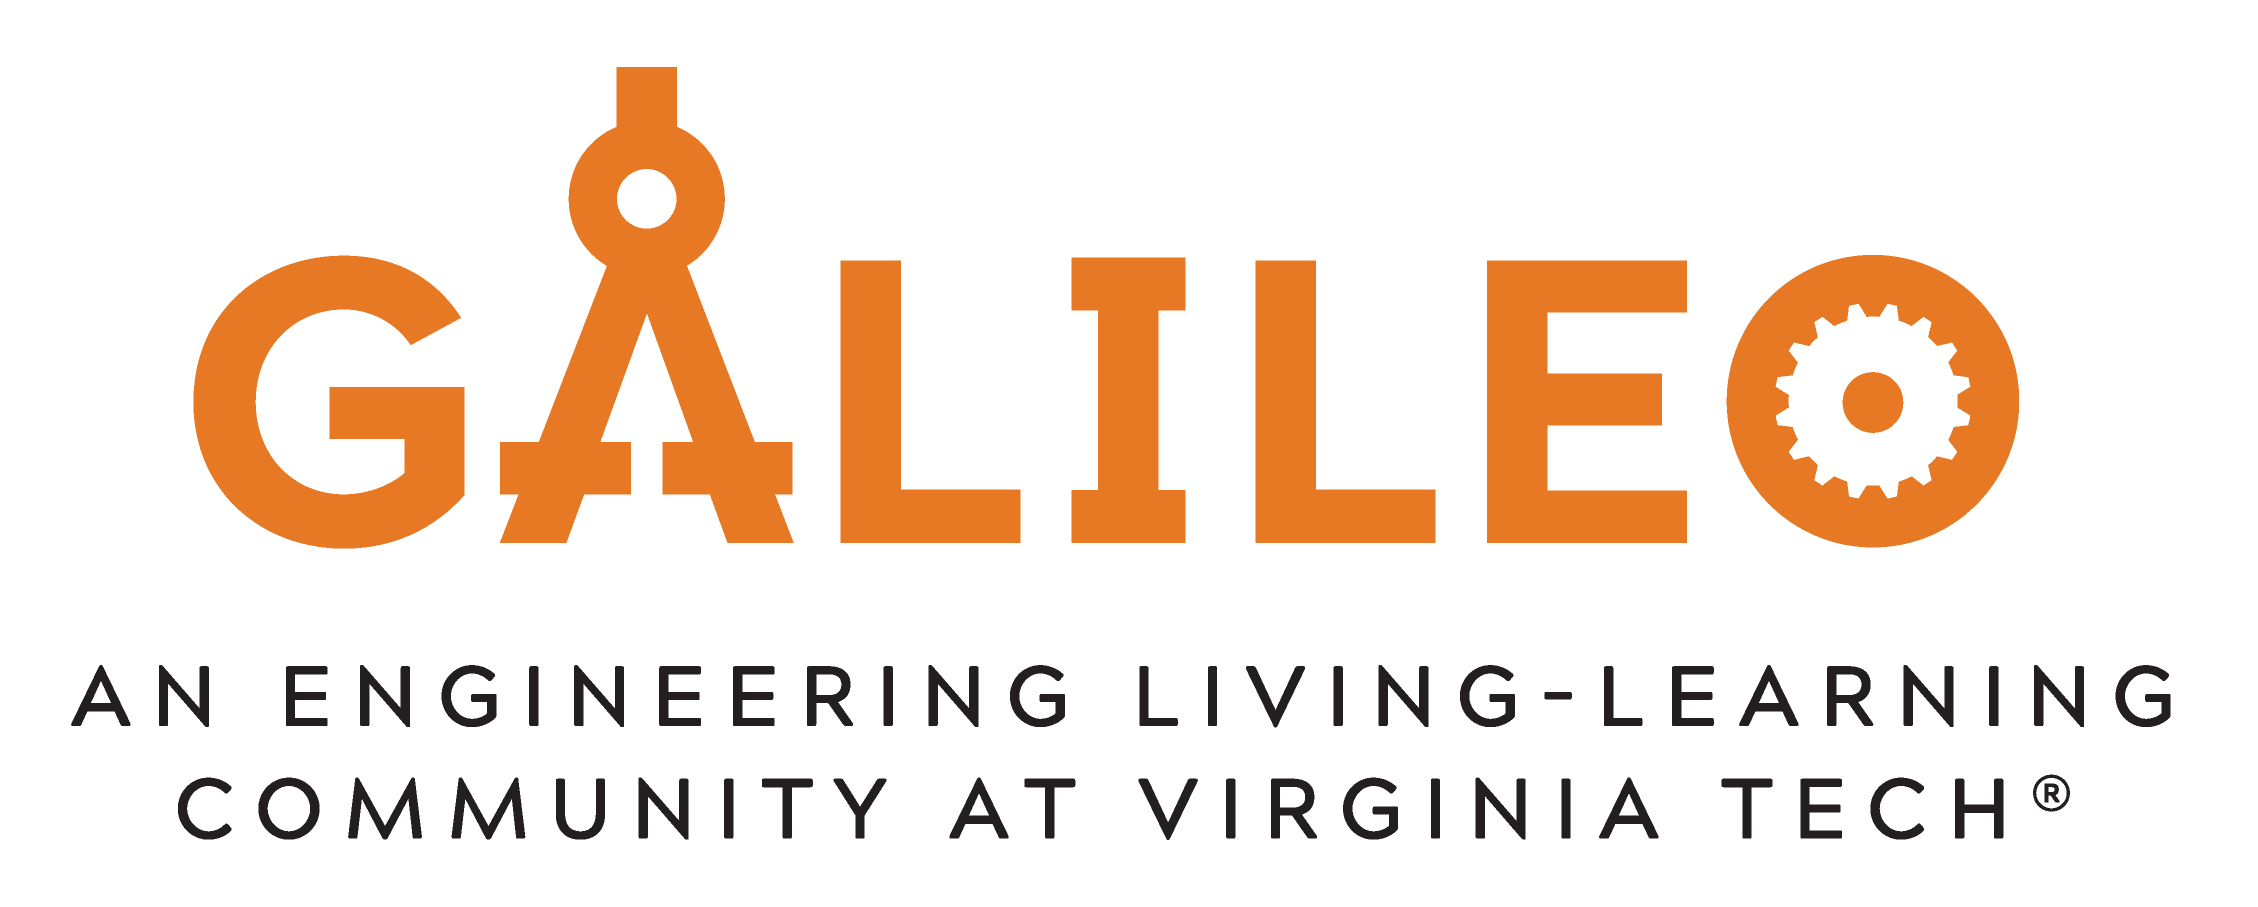 Galileo LLC at Virginia Tech logo